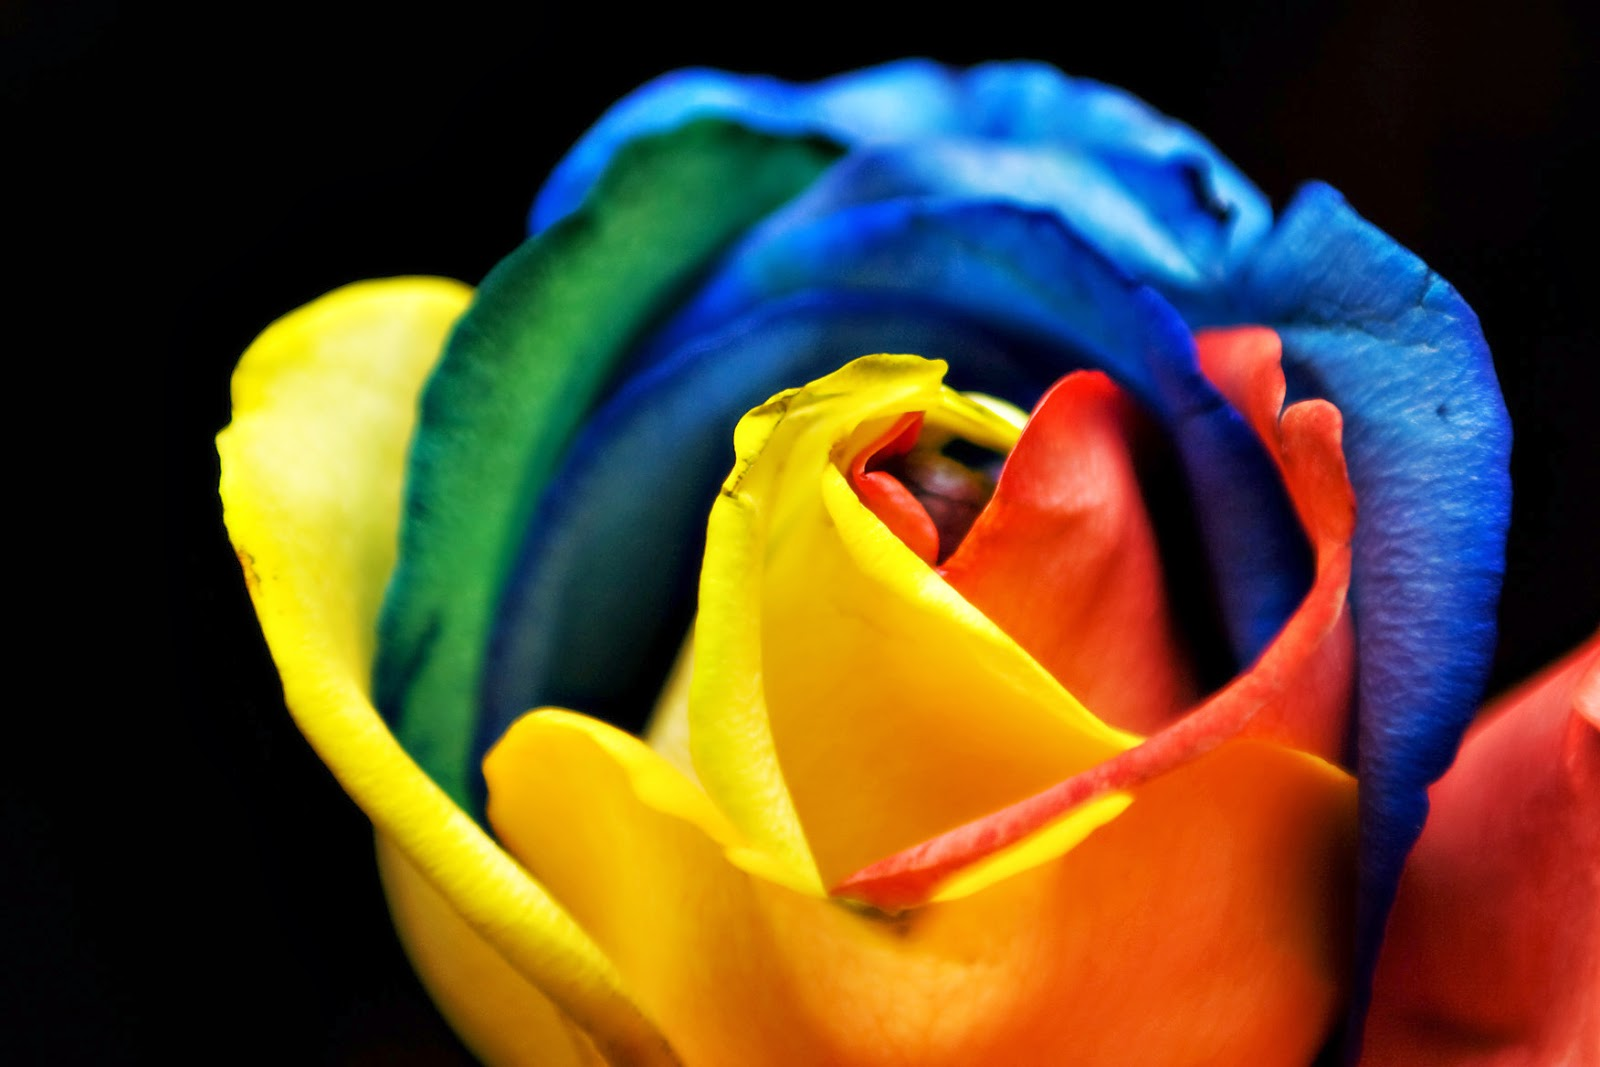 what is a rainbow rose the garden of eaden